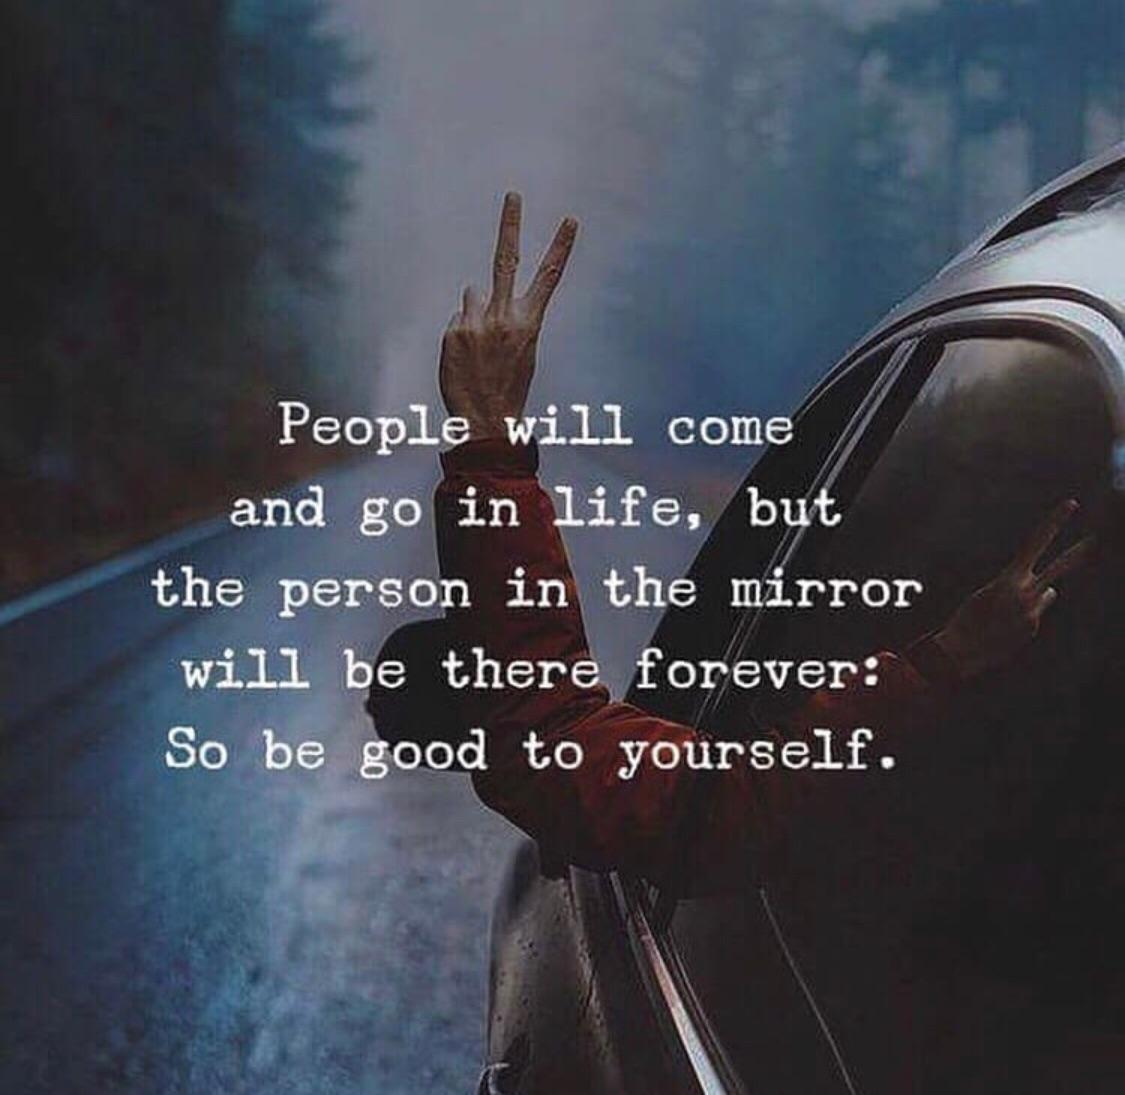 People will come and go in life, but the person in the mirror will be there forever: So be good to yourself [1600 x 1600]